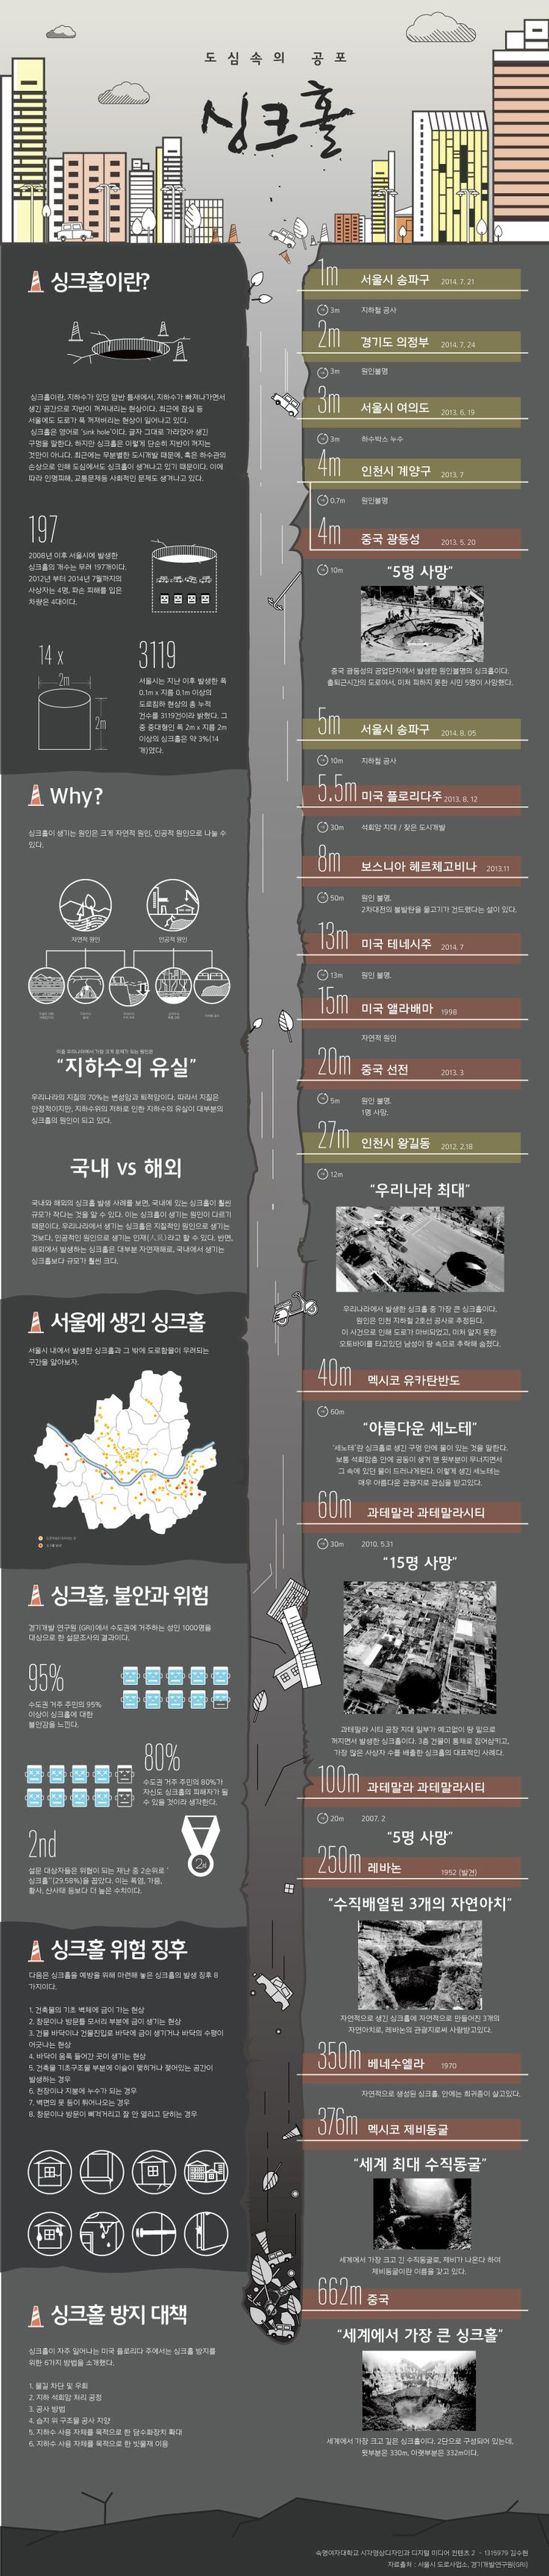 2014 Digital Media Contents 디미컨 중간 과제 인포그래픽. 싱크홀 #infographic #sinkhole design by #suhyeonkim